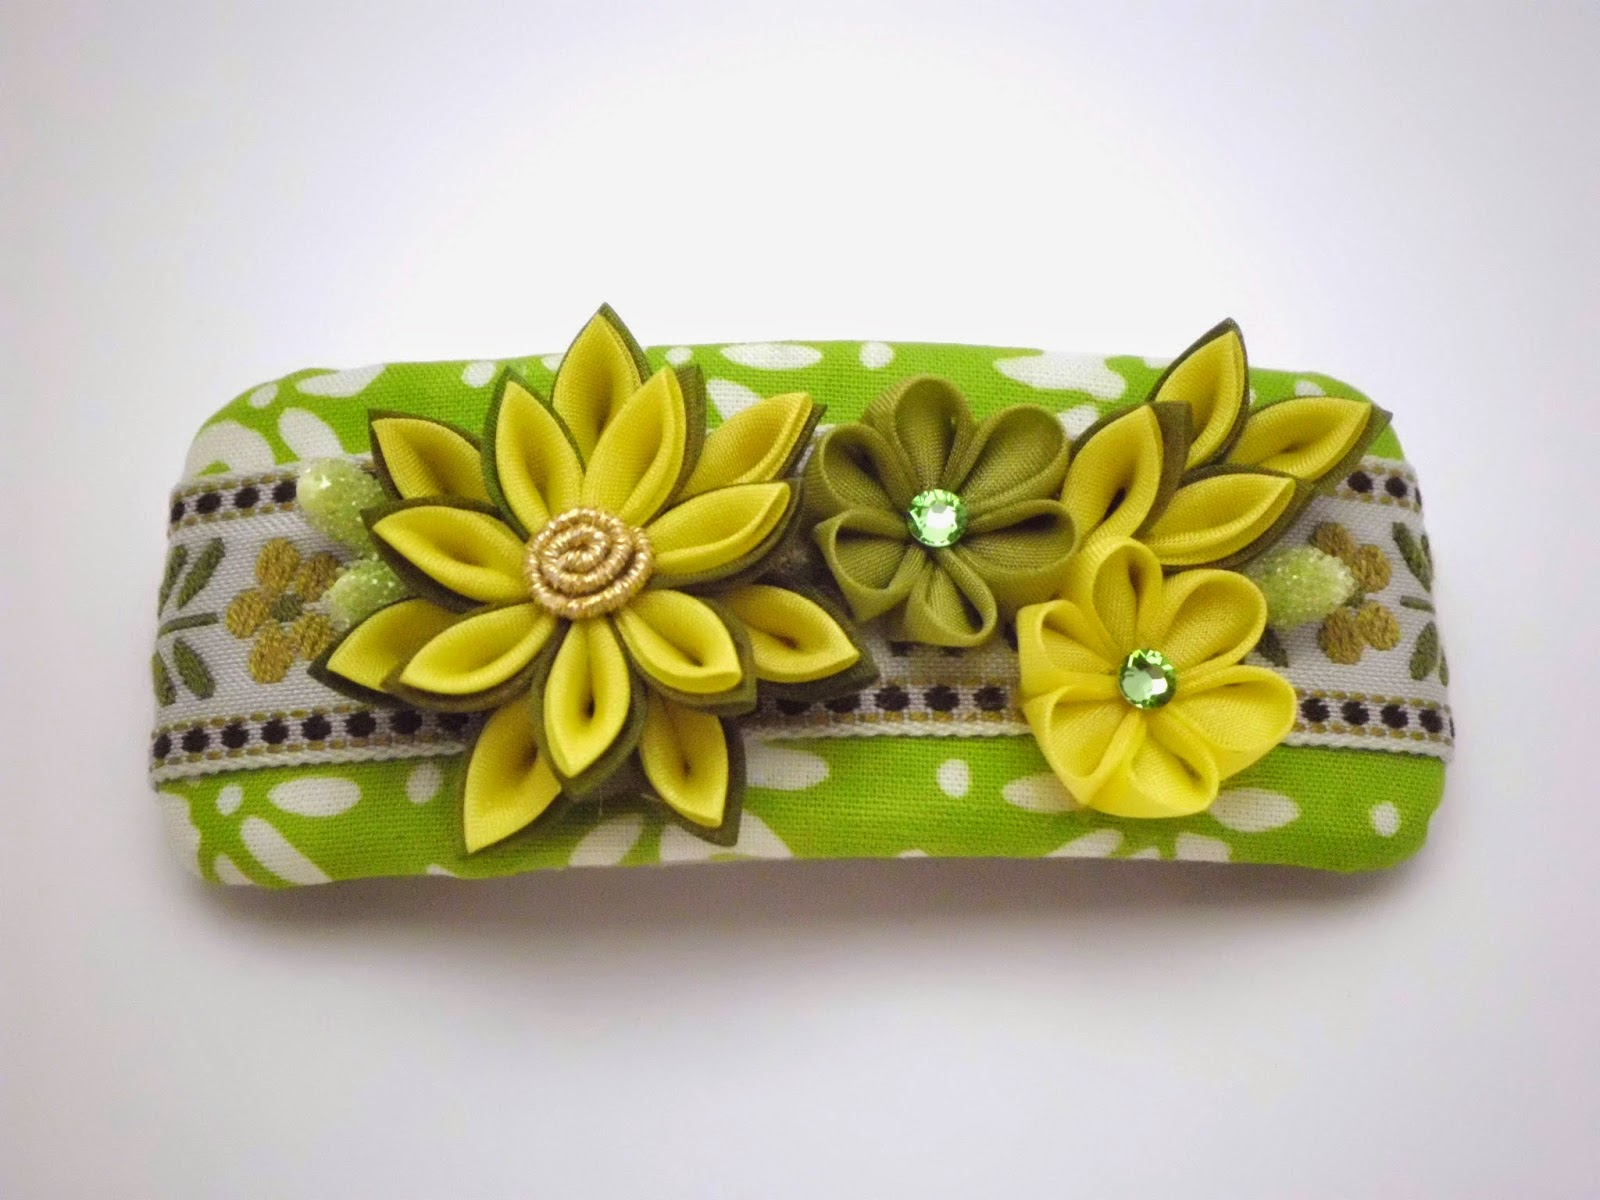 https://www.etsy.com/listing/228258295/hair-barrette-french-barrette-green